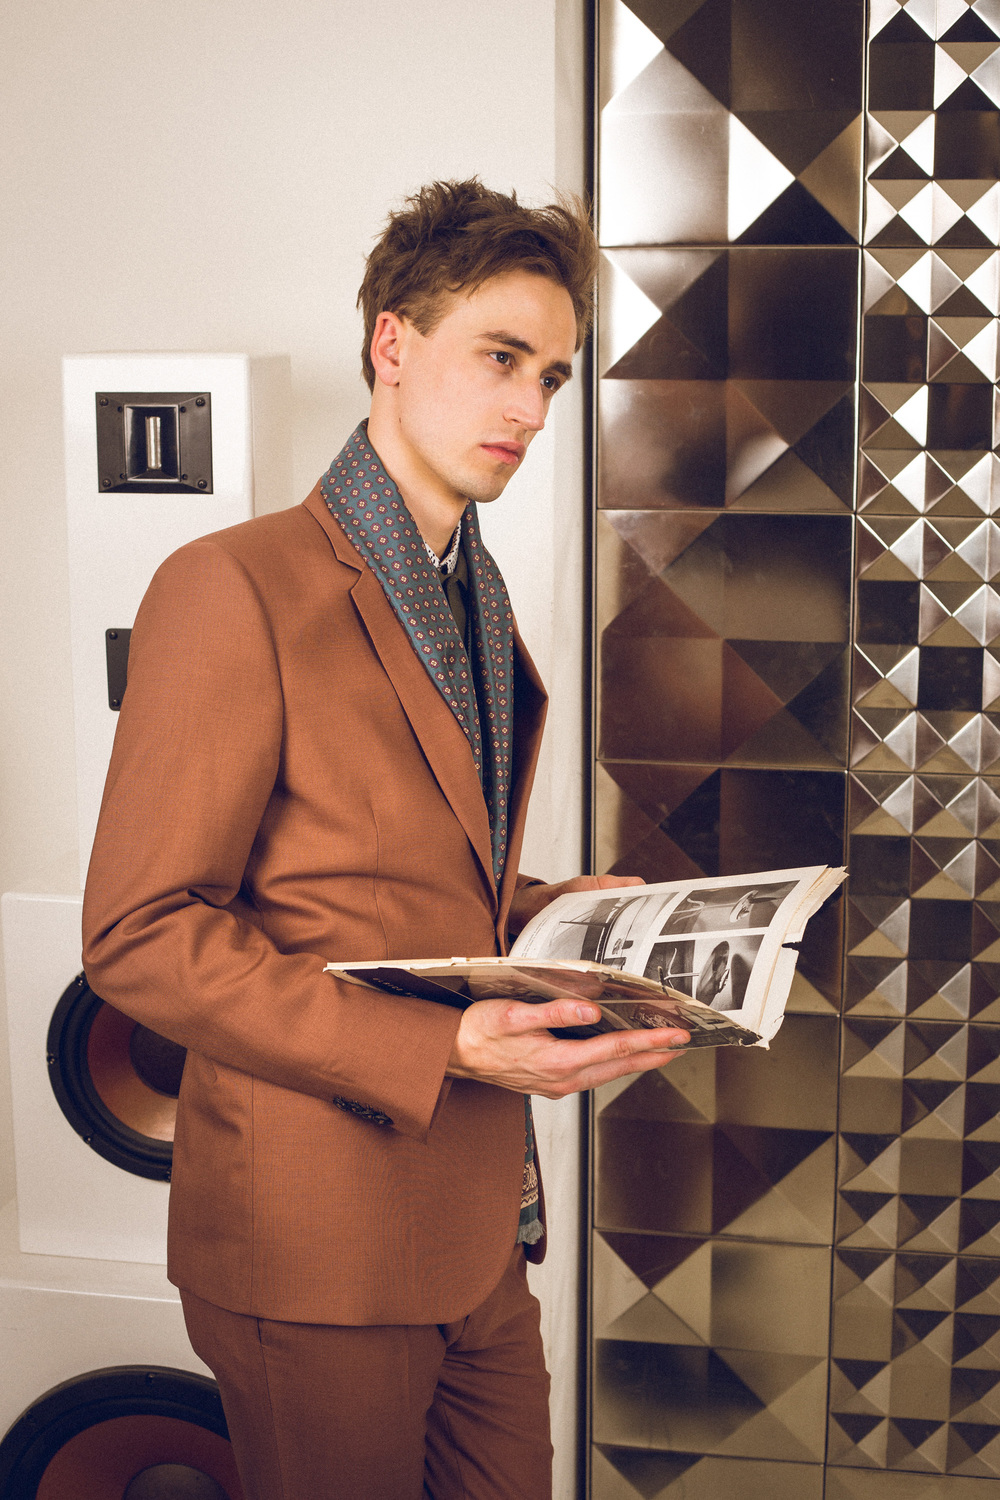 Moritz is wearing a Paul Smith suit and scarf.